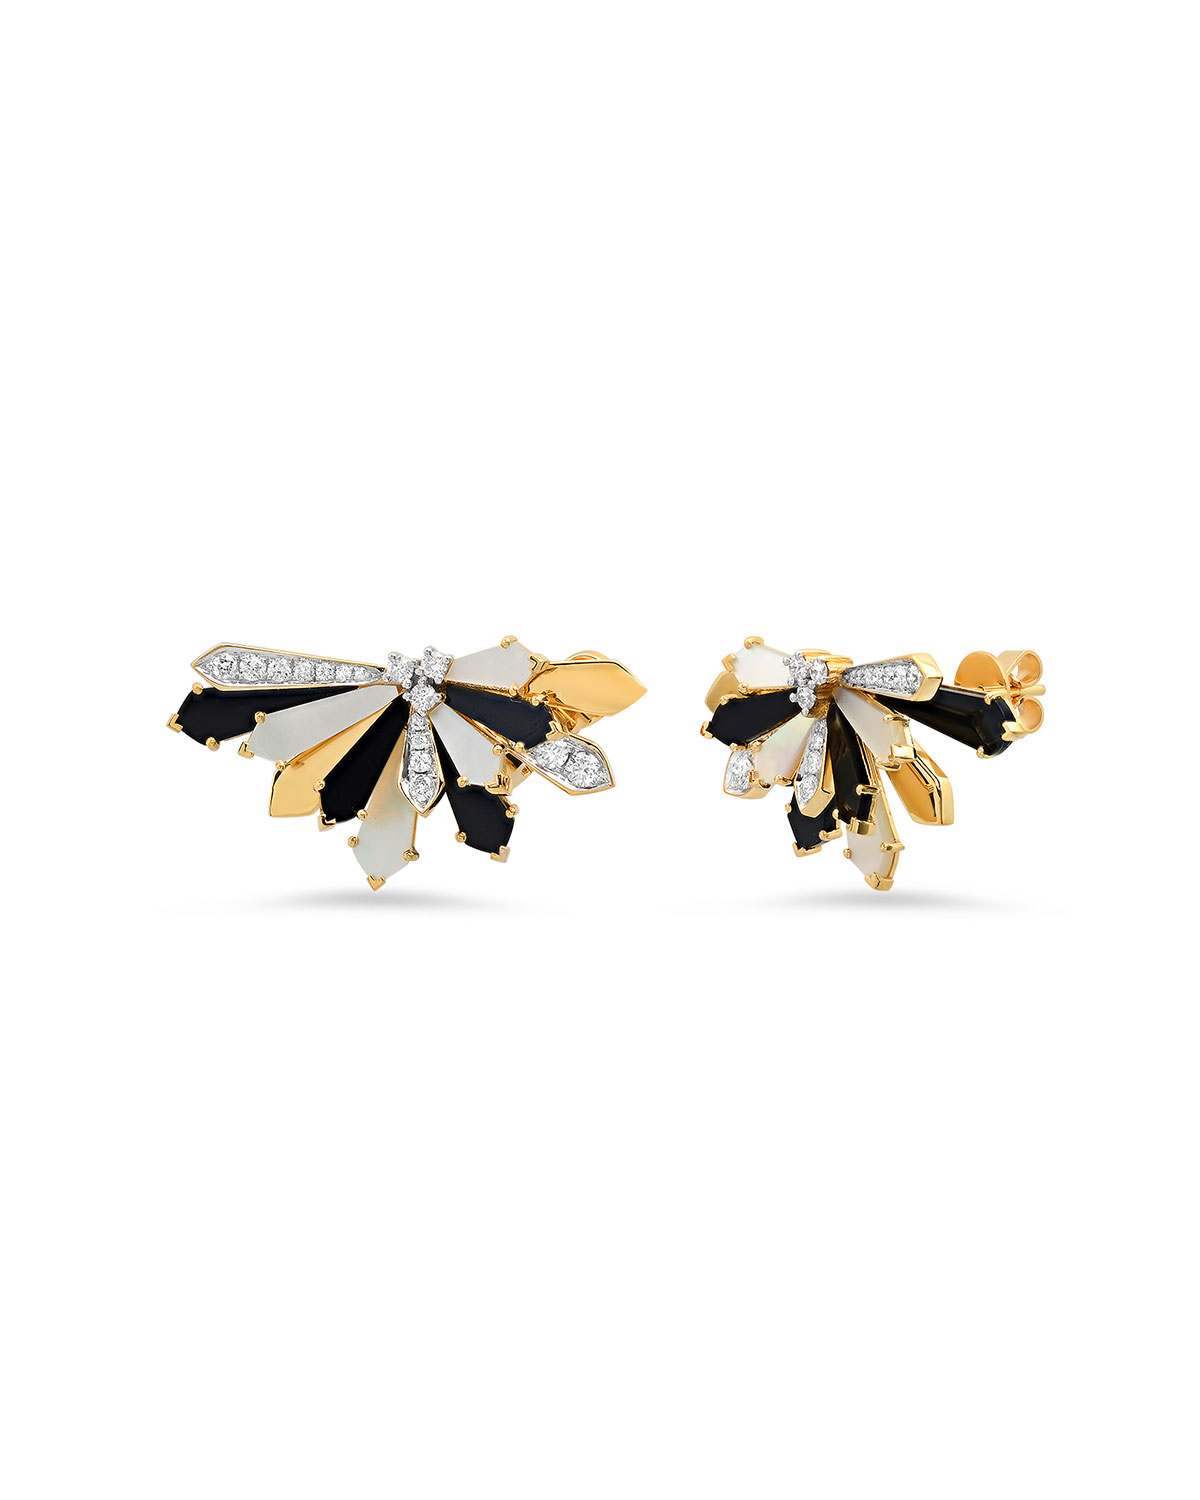 Mini Penacho Stud Earrings in Mother-of-Pearl and Onyx